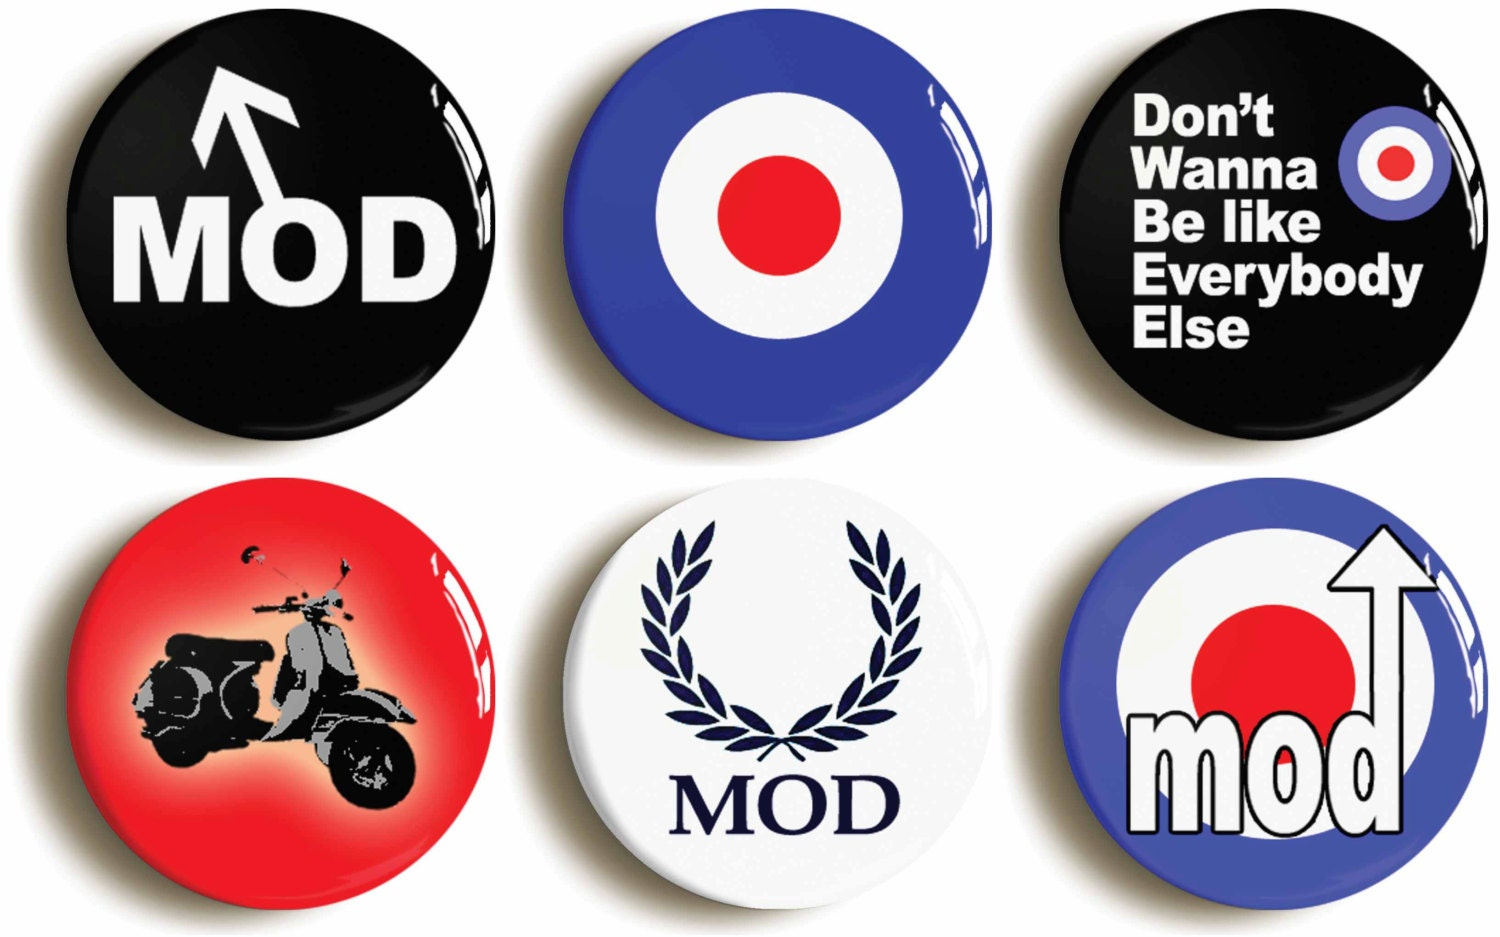 mod badges buttons pins set of six 1960s retro sixties. Black Bedroom Furniture Sets. Home Design Ideas